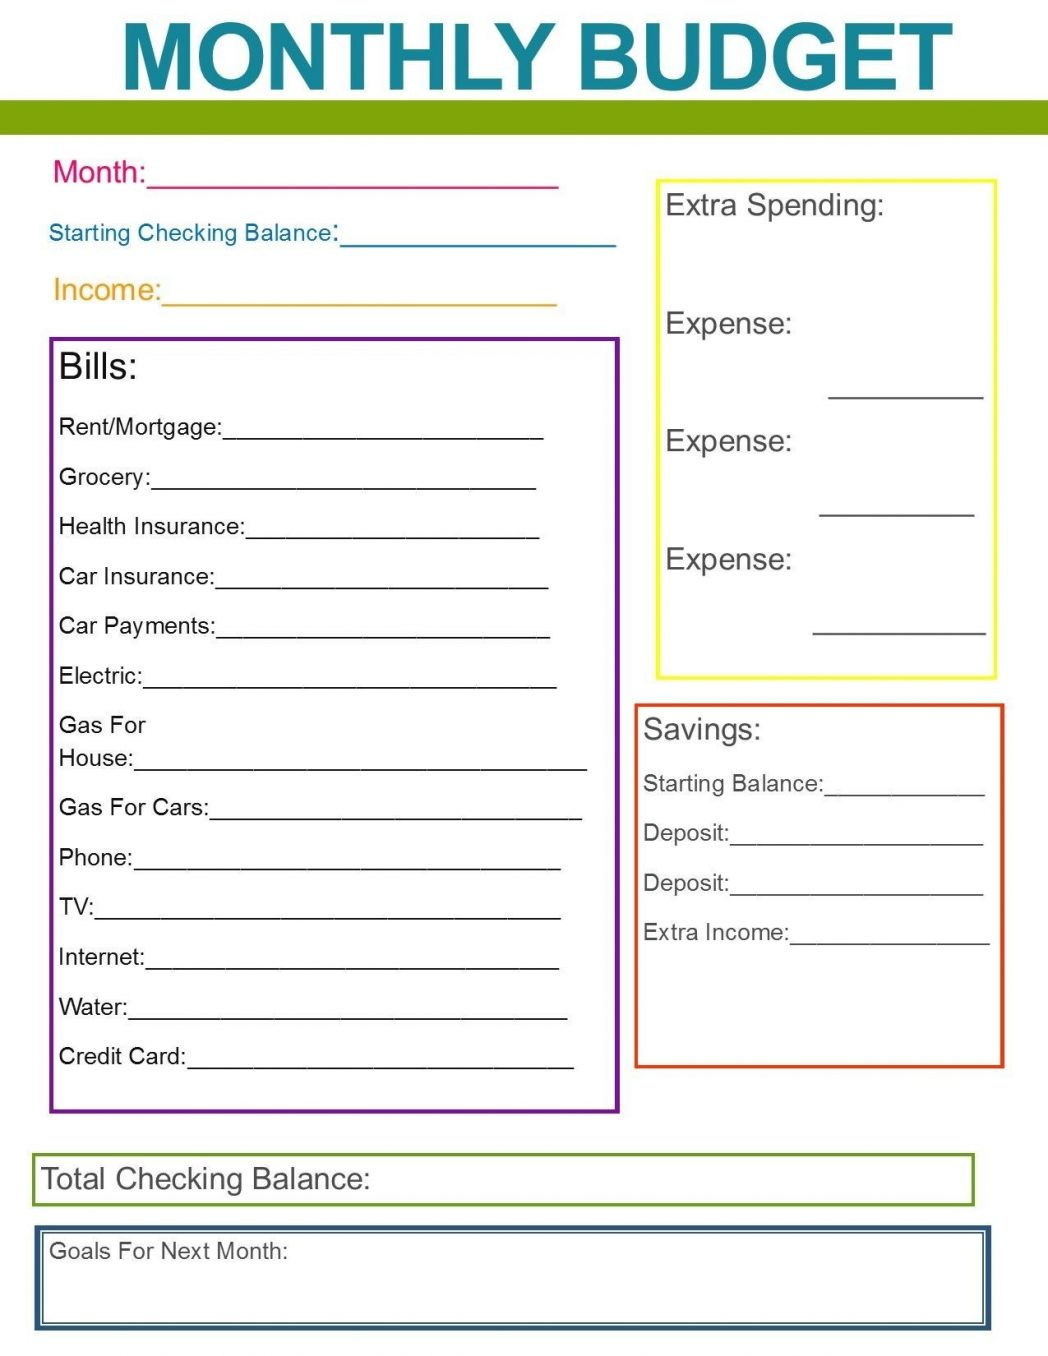 Best Home Budget Spreadsheet Throughout Home Budget Spreadsheet Free Best Bud Valid Monthly Family Par